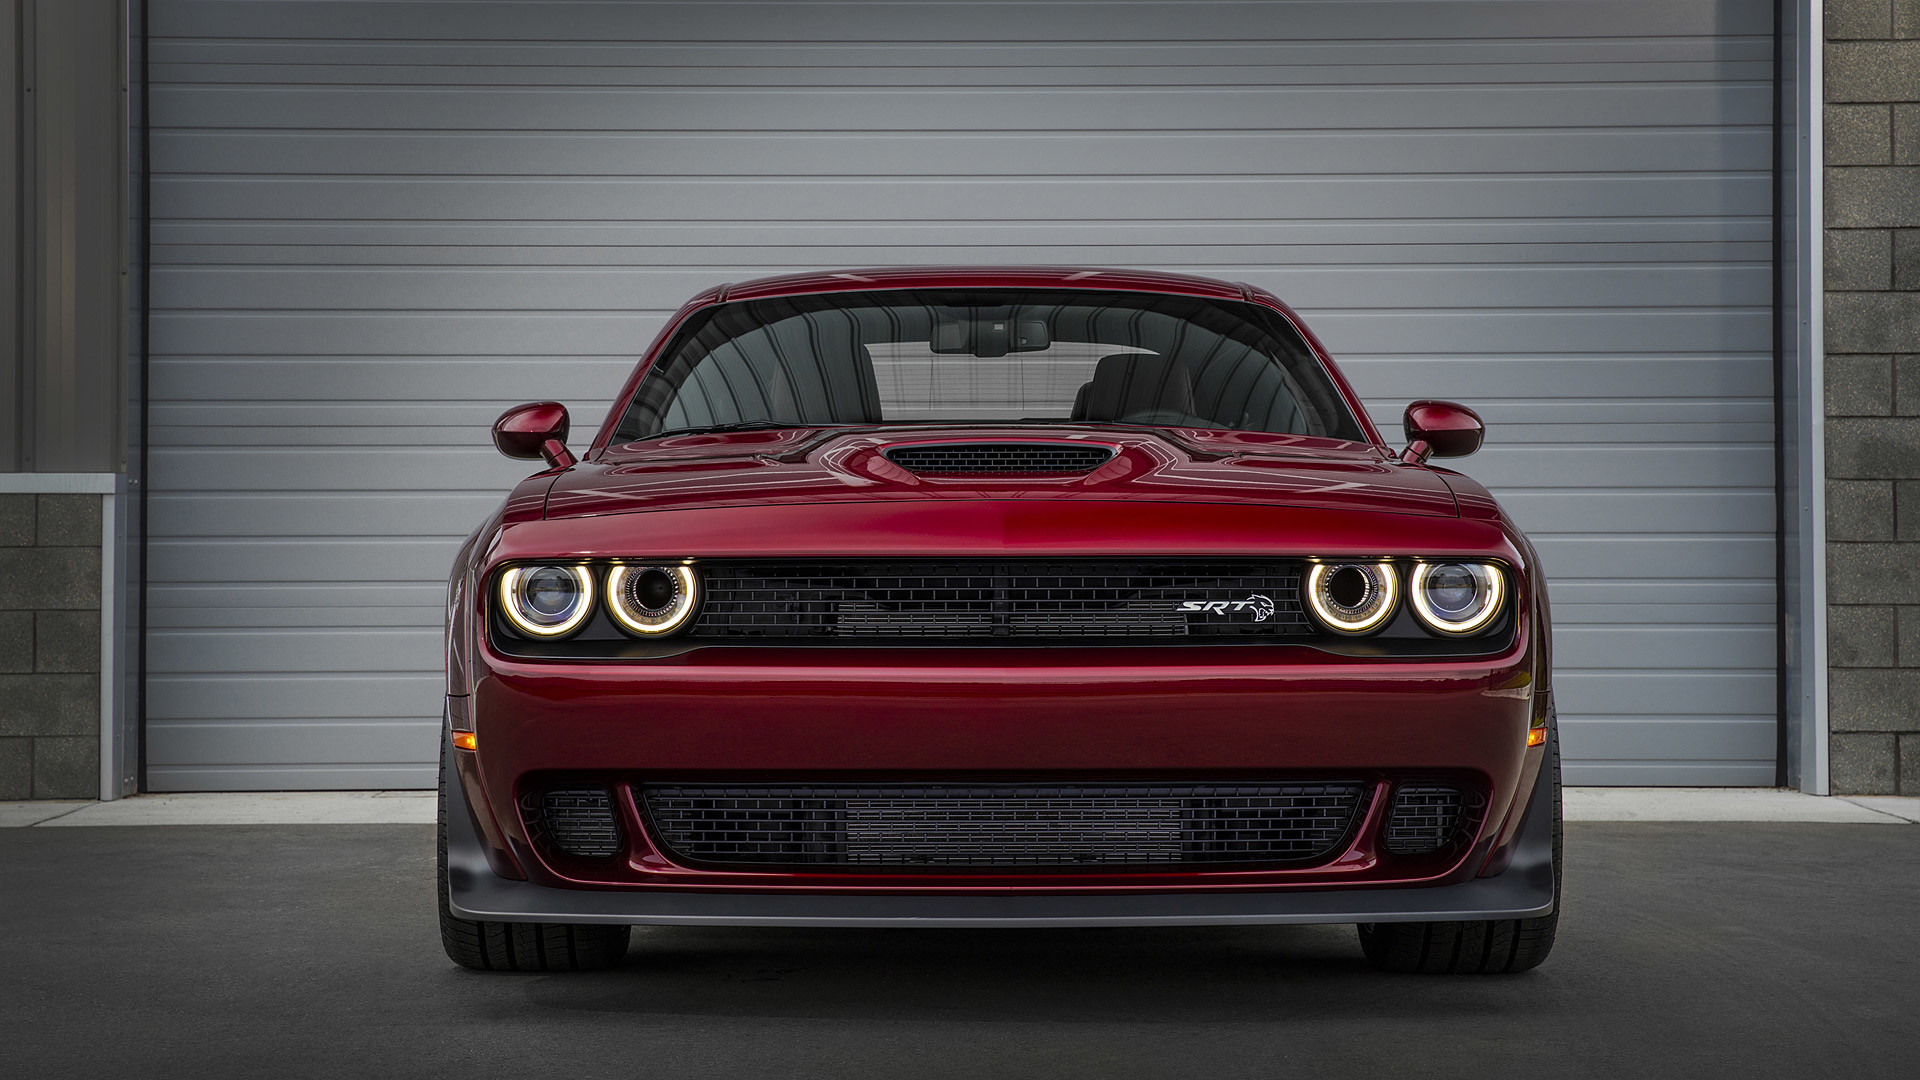 Res: 1920x1080, 2018 Dodge Challenger SRT Hellcat Widebody picture